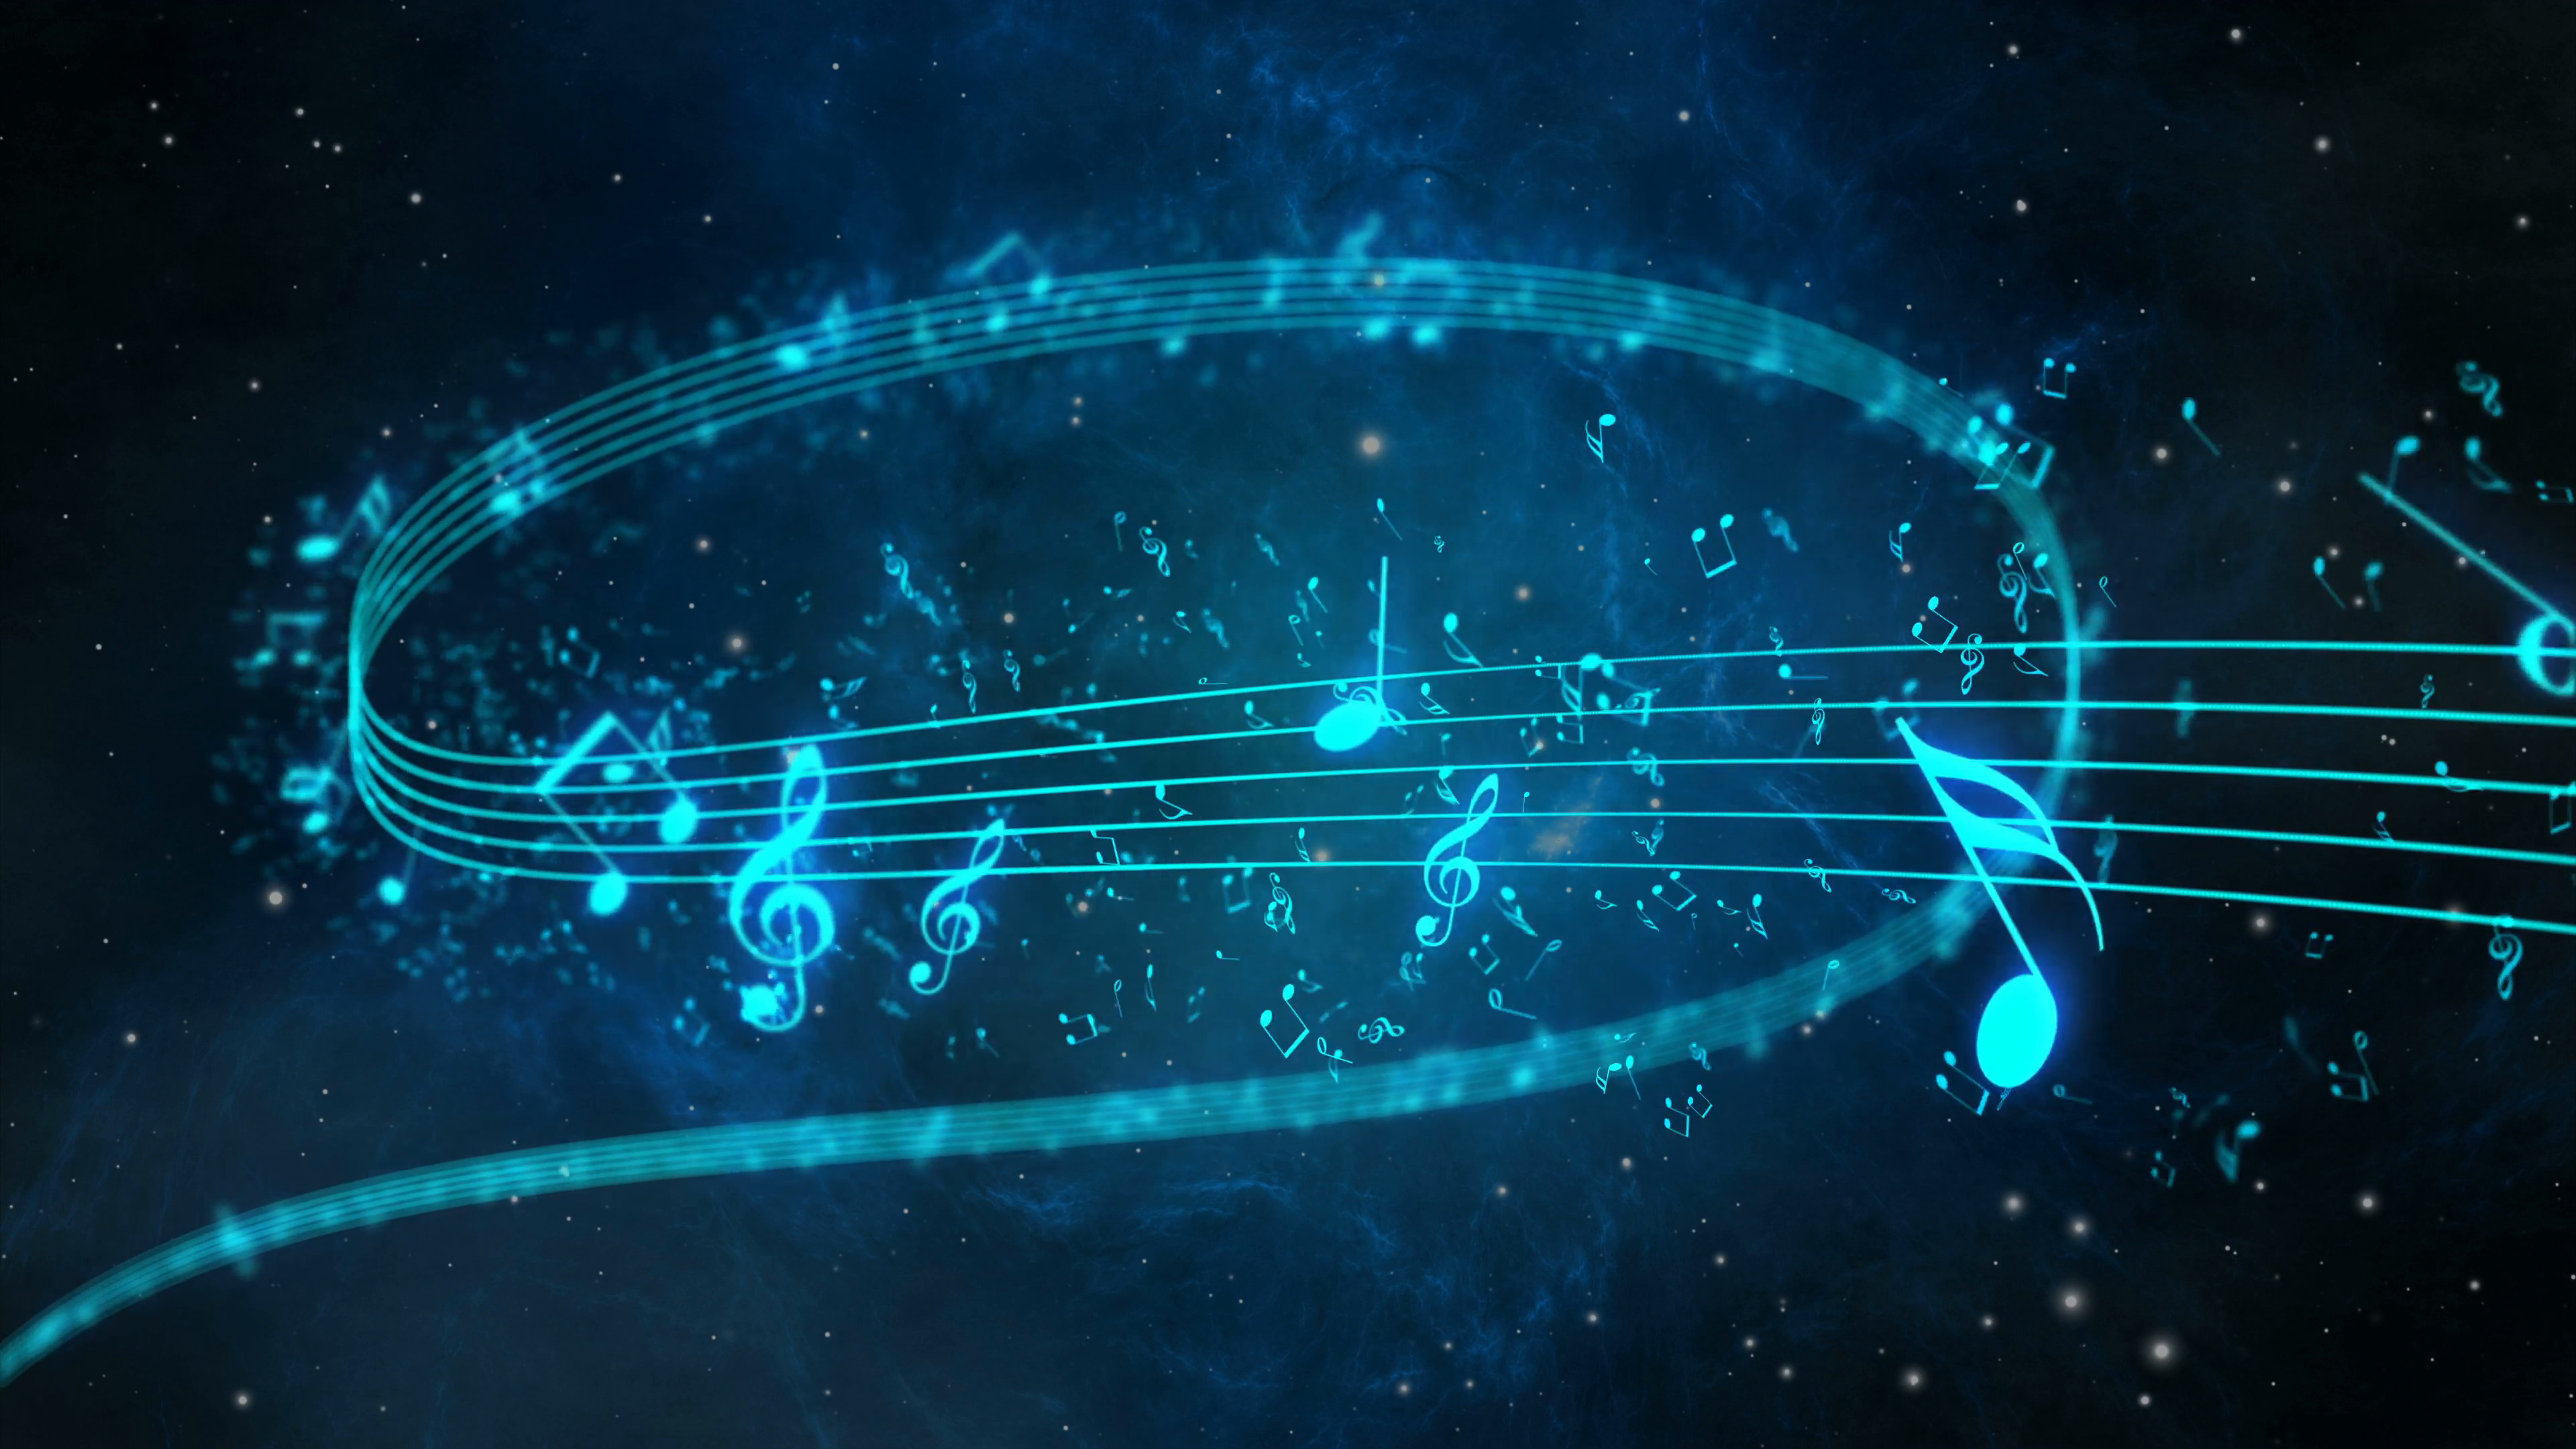 music notes background 52 images